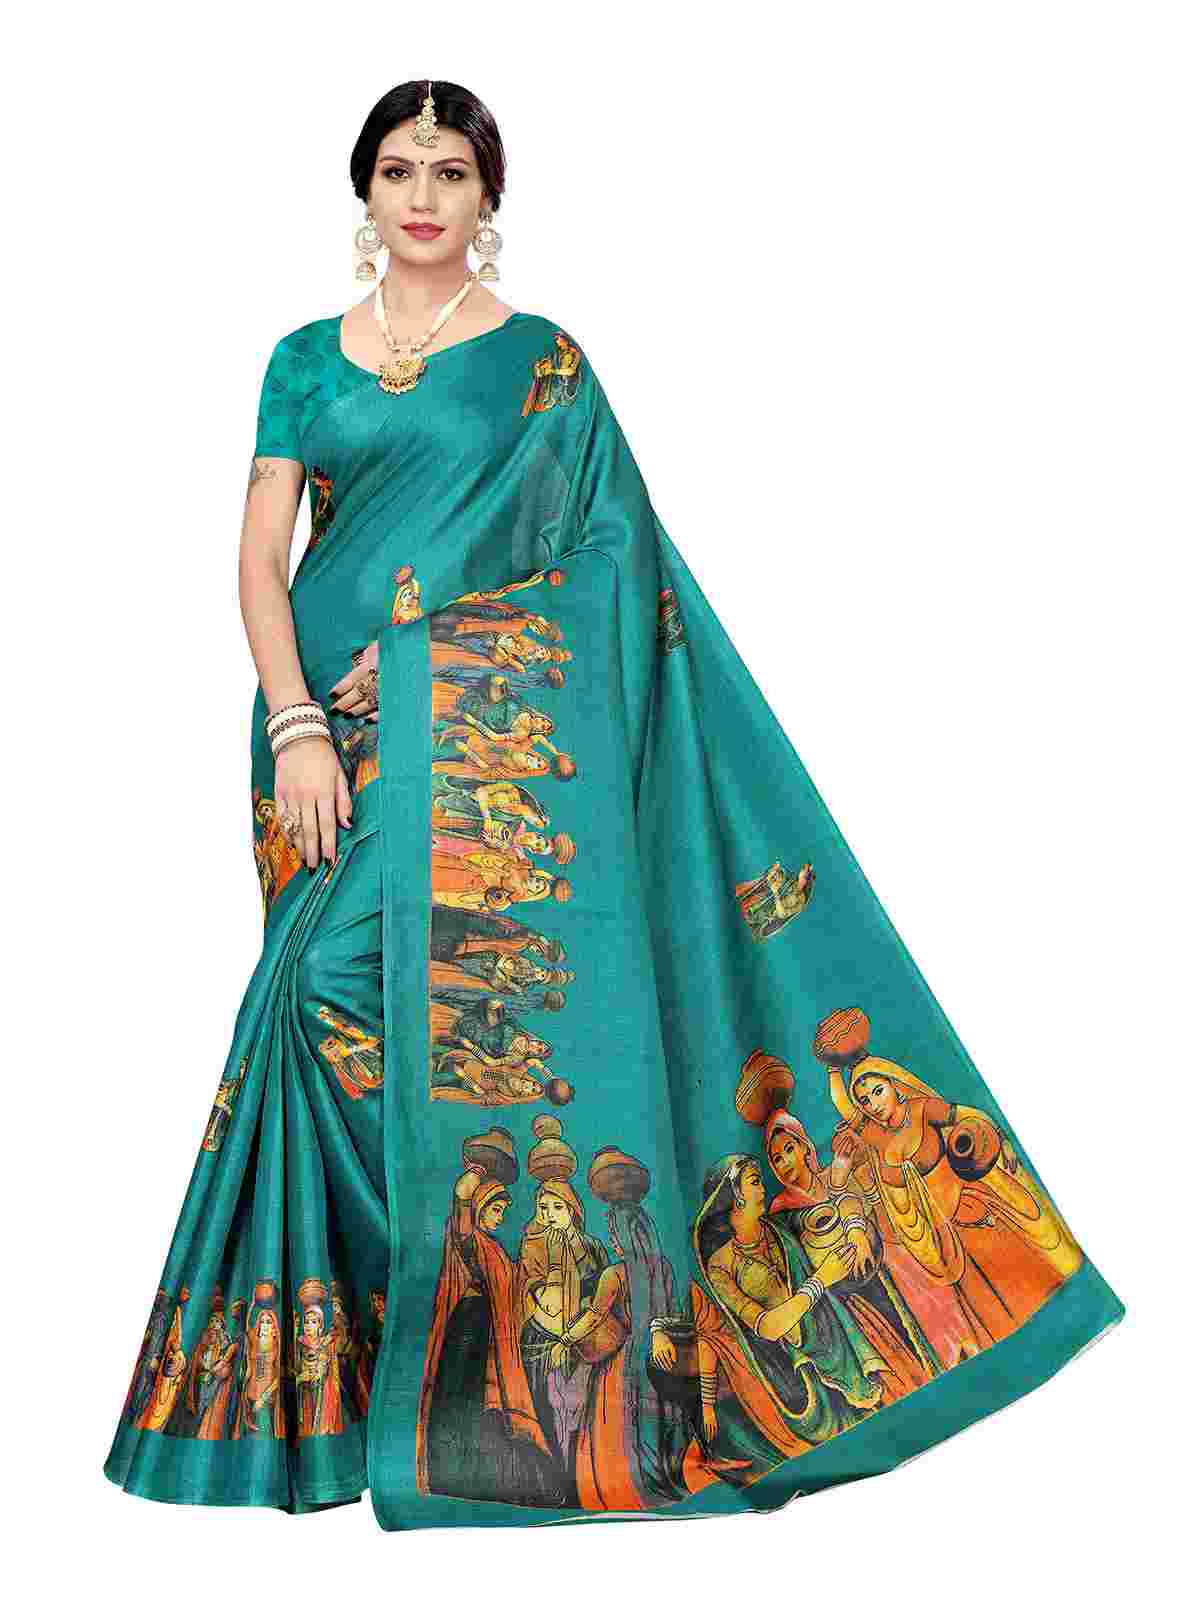 Blooming Teal Colored Casual Pallu Printed Khaadi Silk Saree With Unstitched Blouse